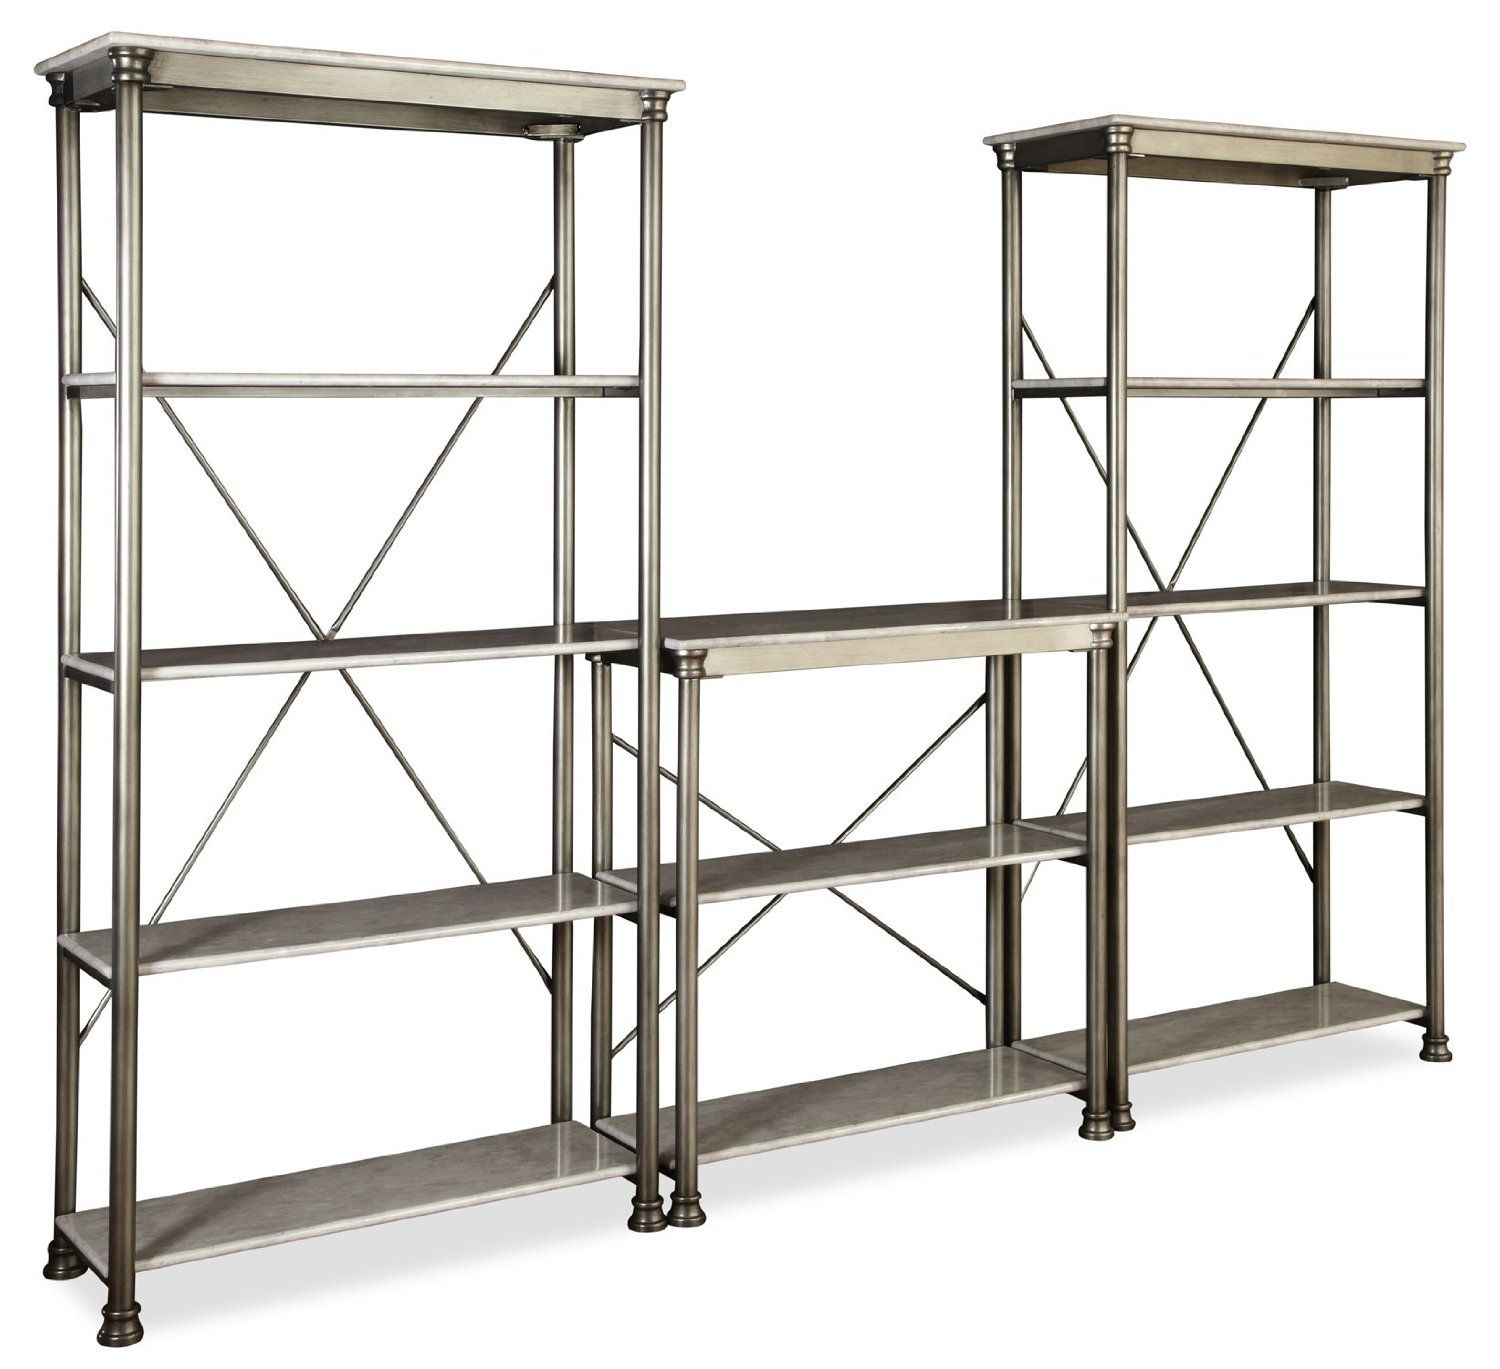 Dalton double bar back shelves l x d x h barsbar backs